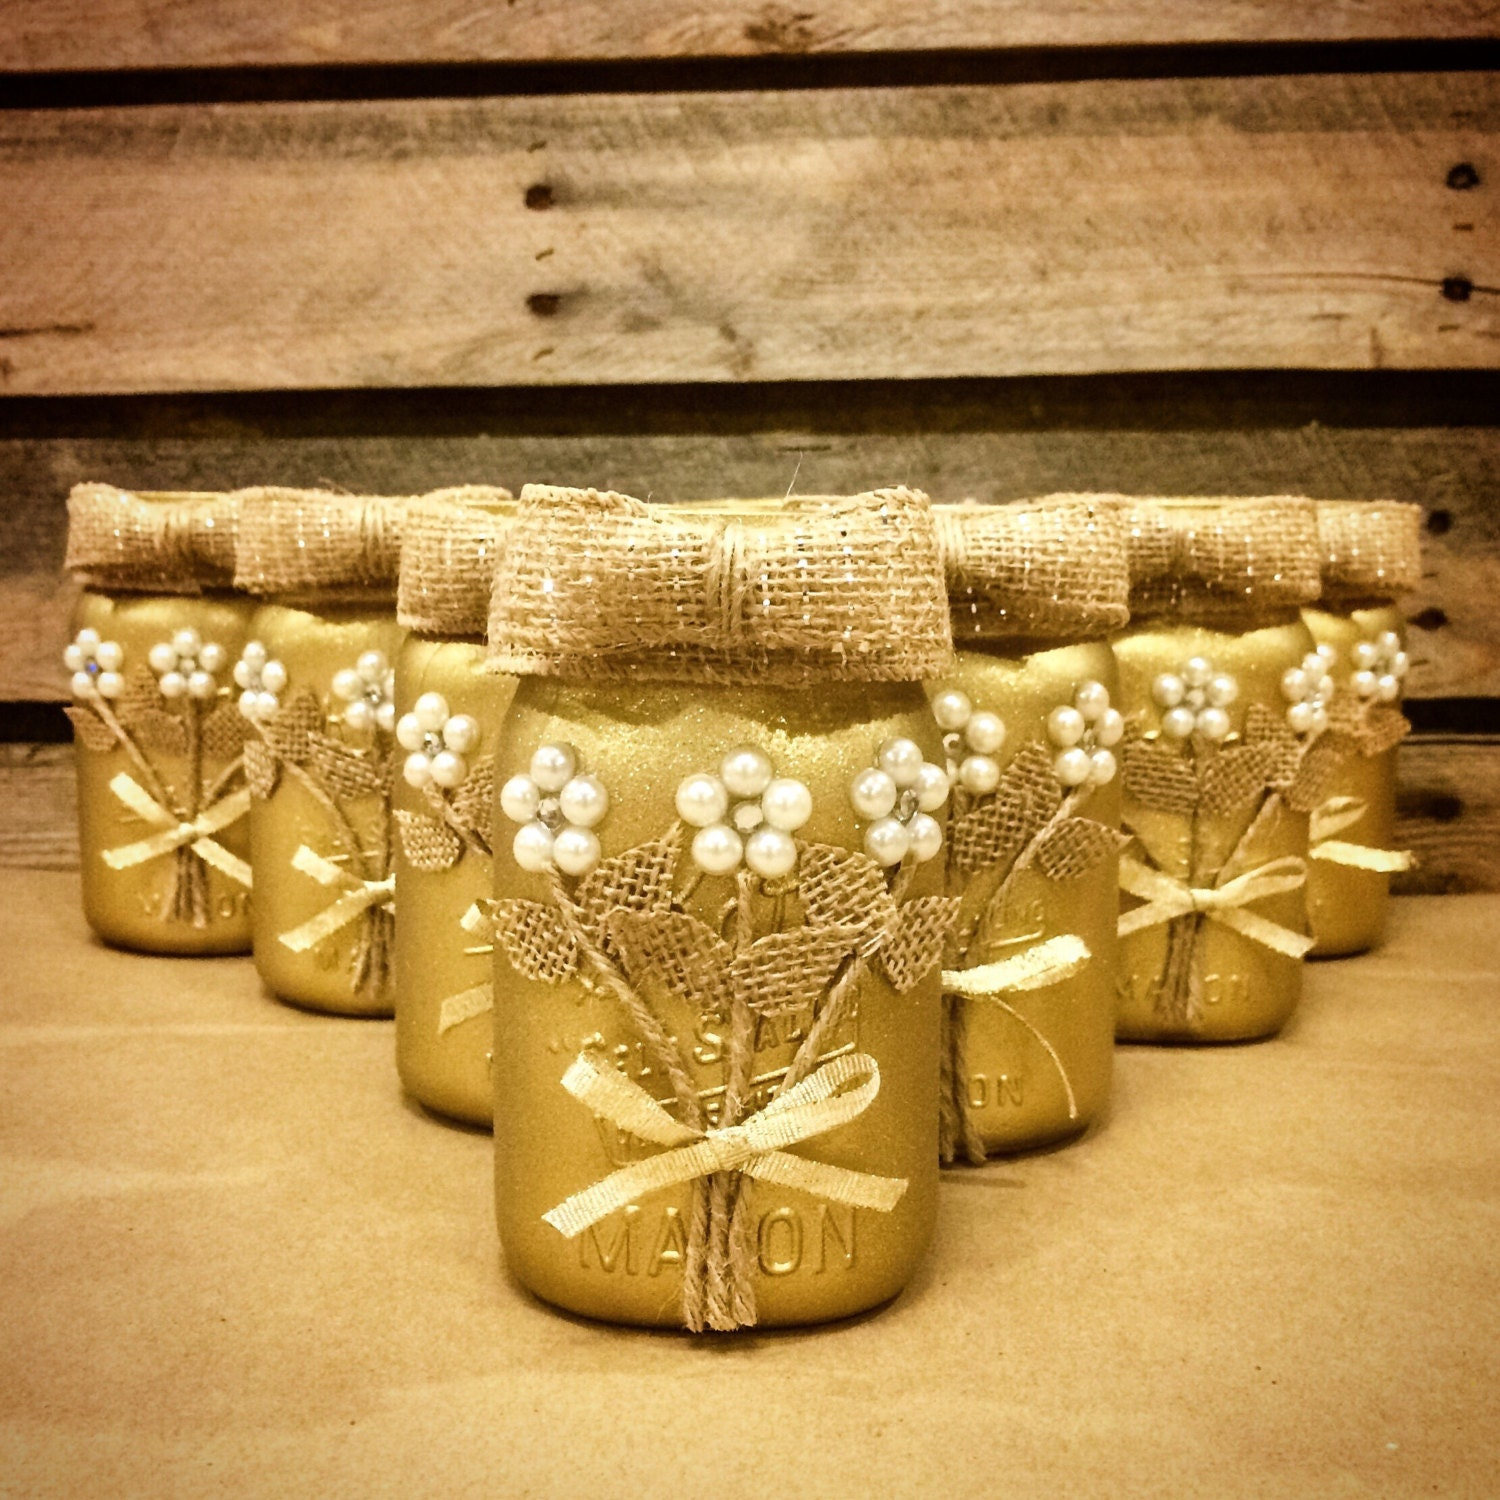 Rustic Jars For Wedding: Gold Mason Jar Wedding Mason Jar Rustic Mason Jar Rustic